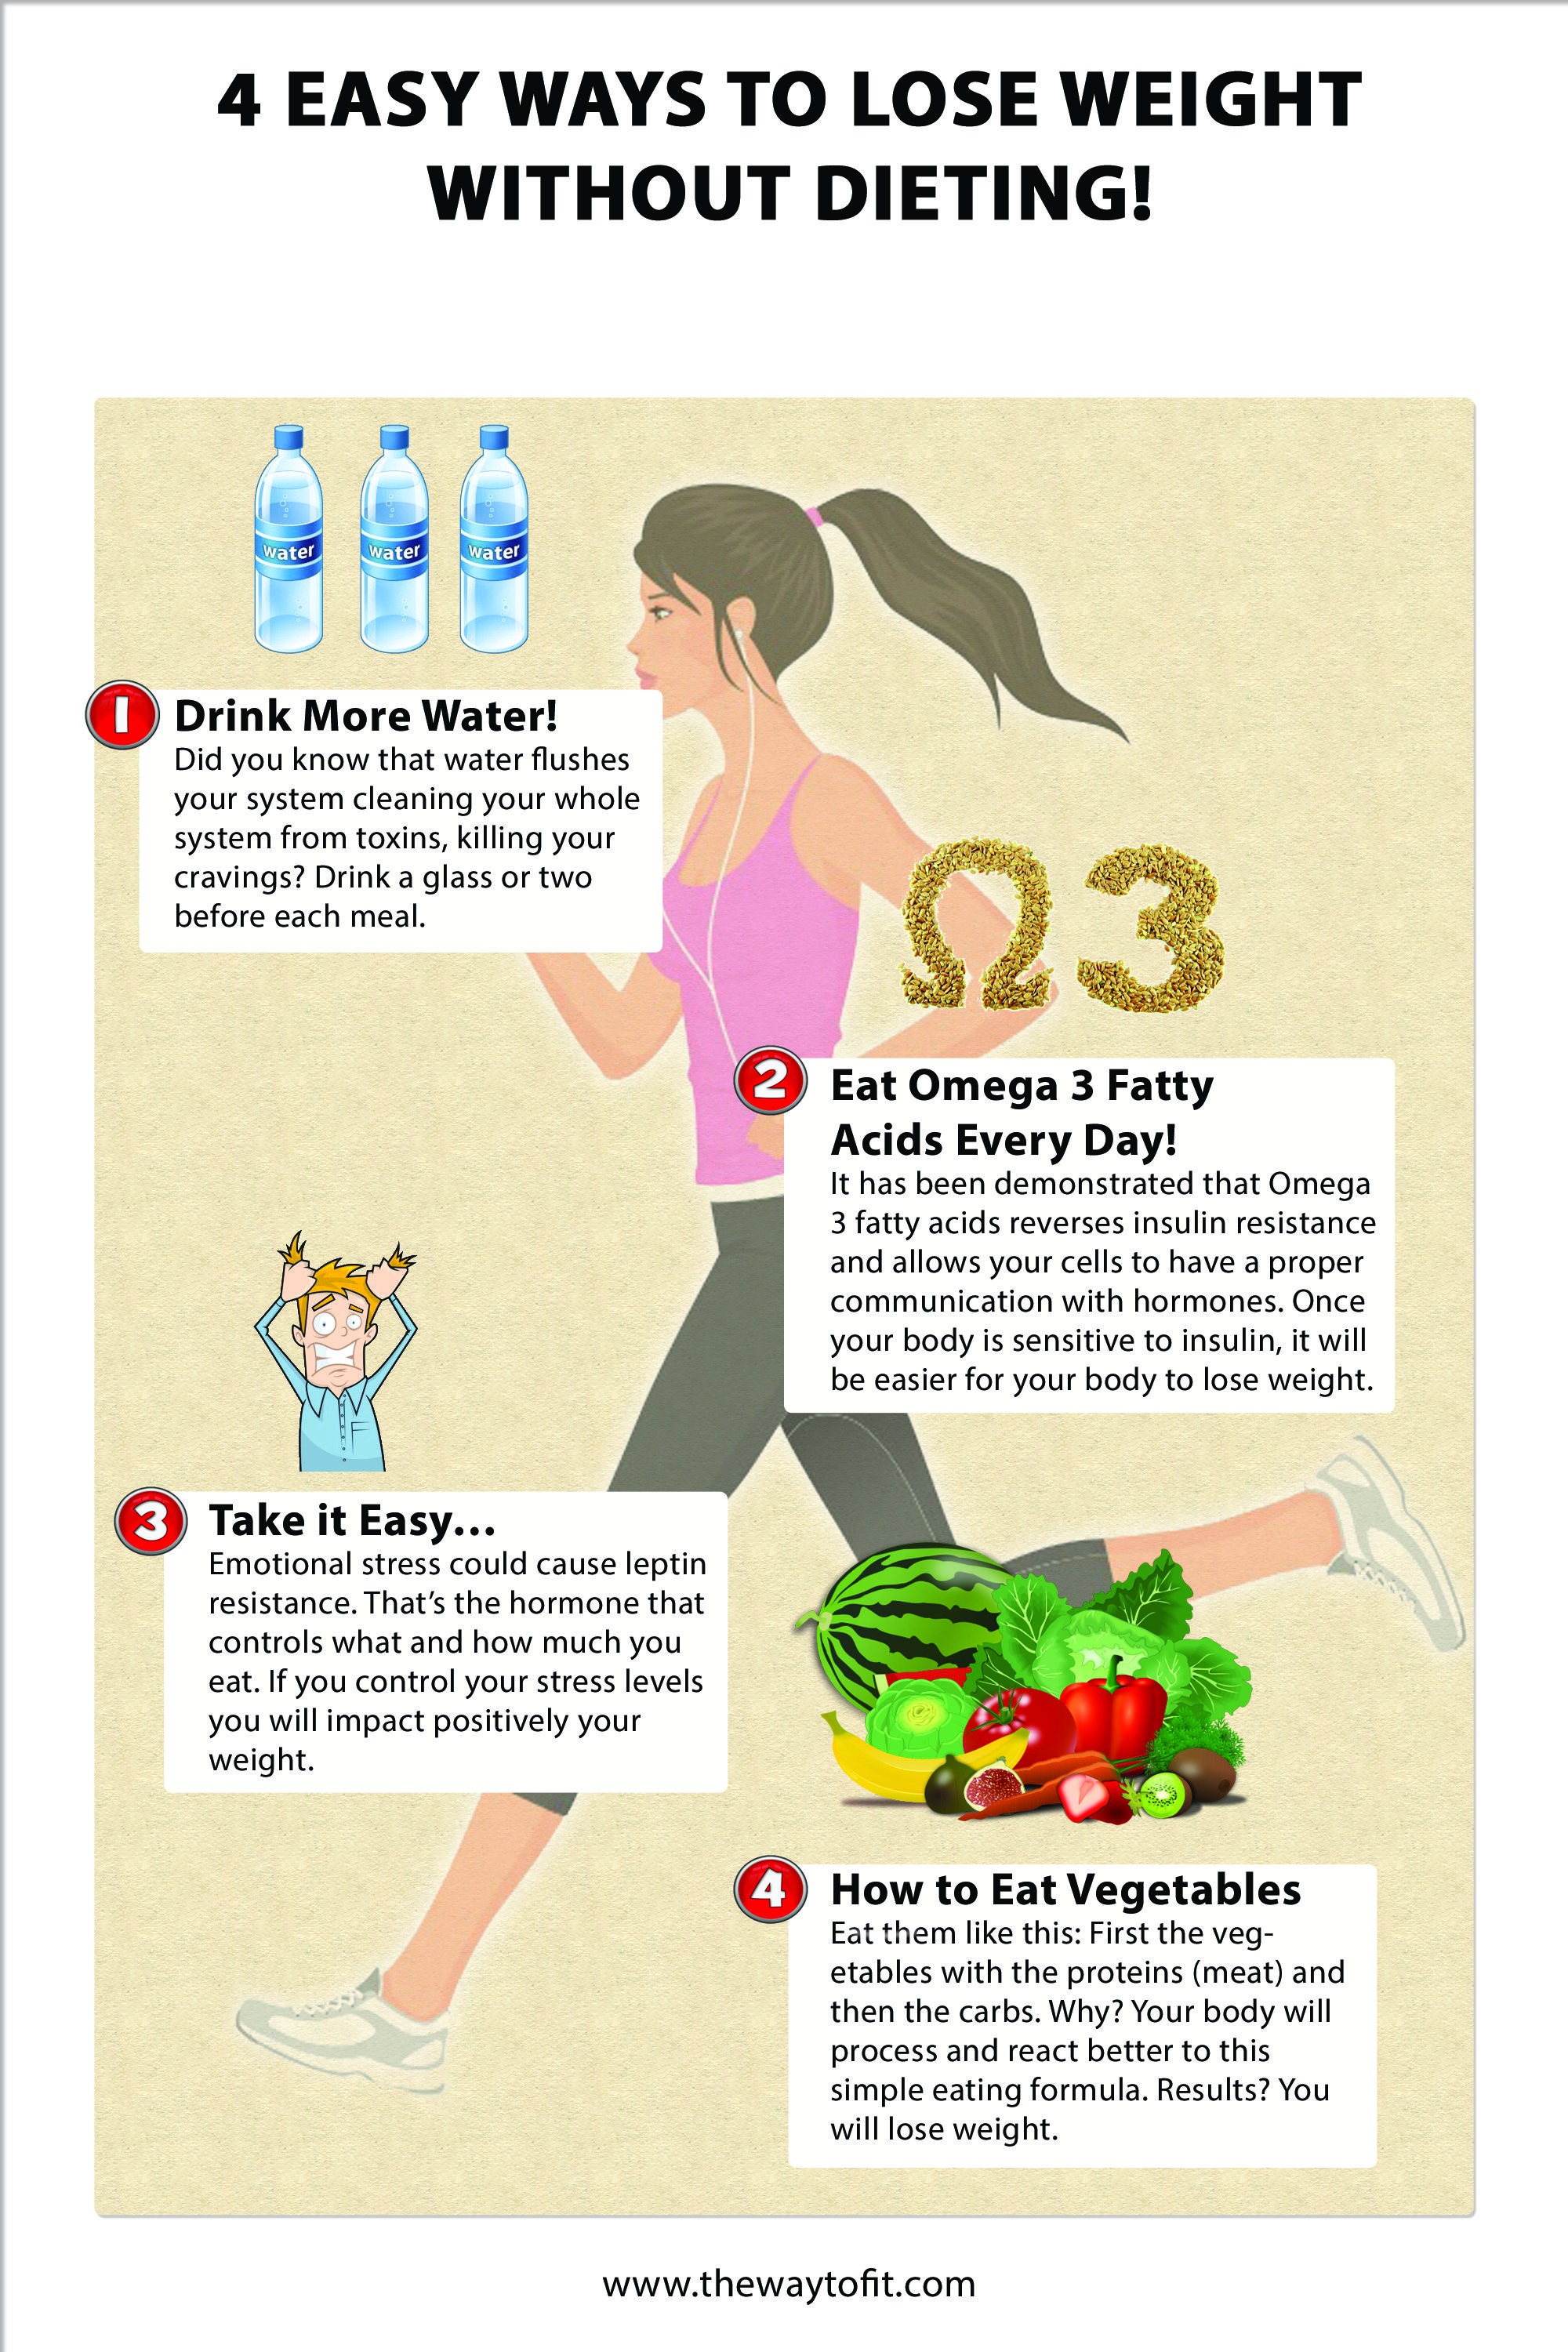 How to lose weight and easy